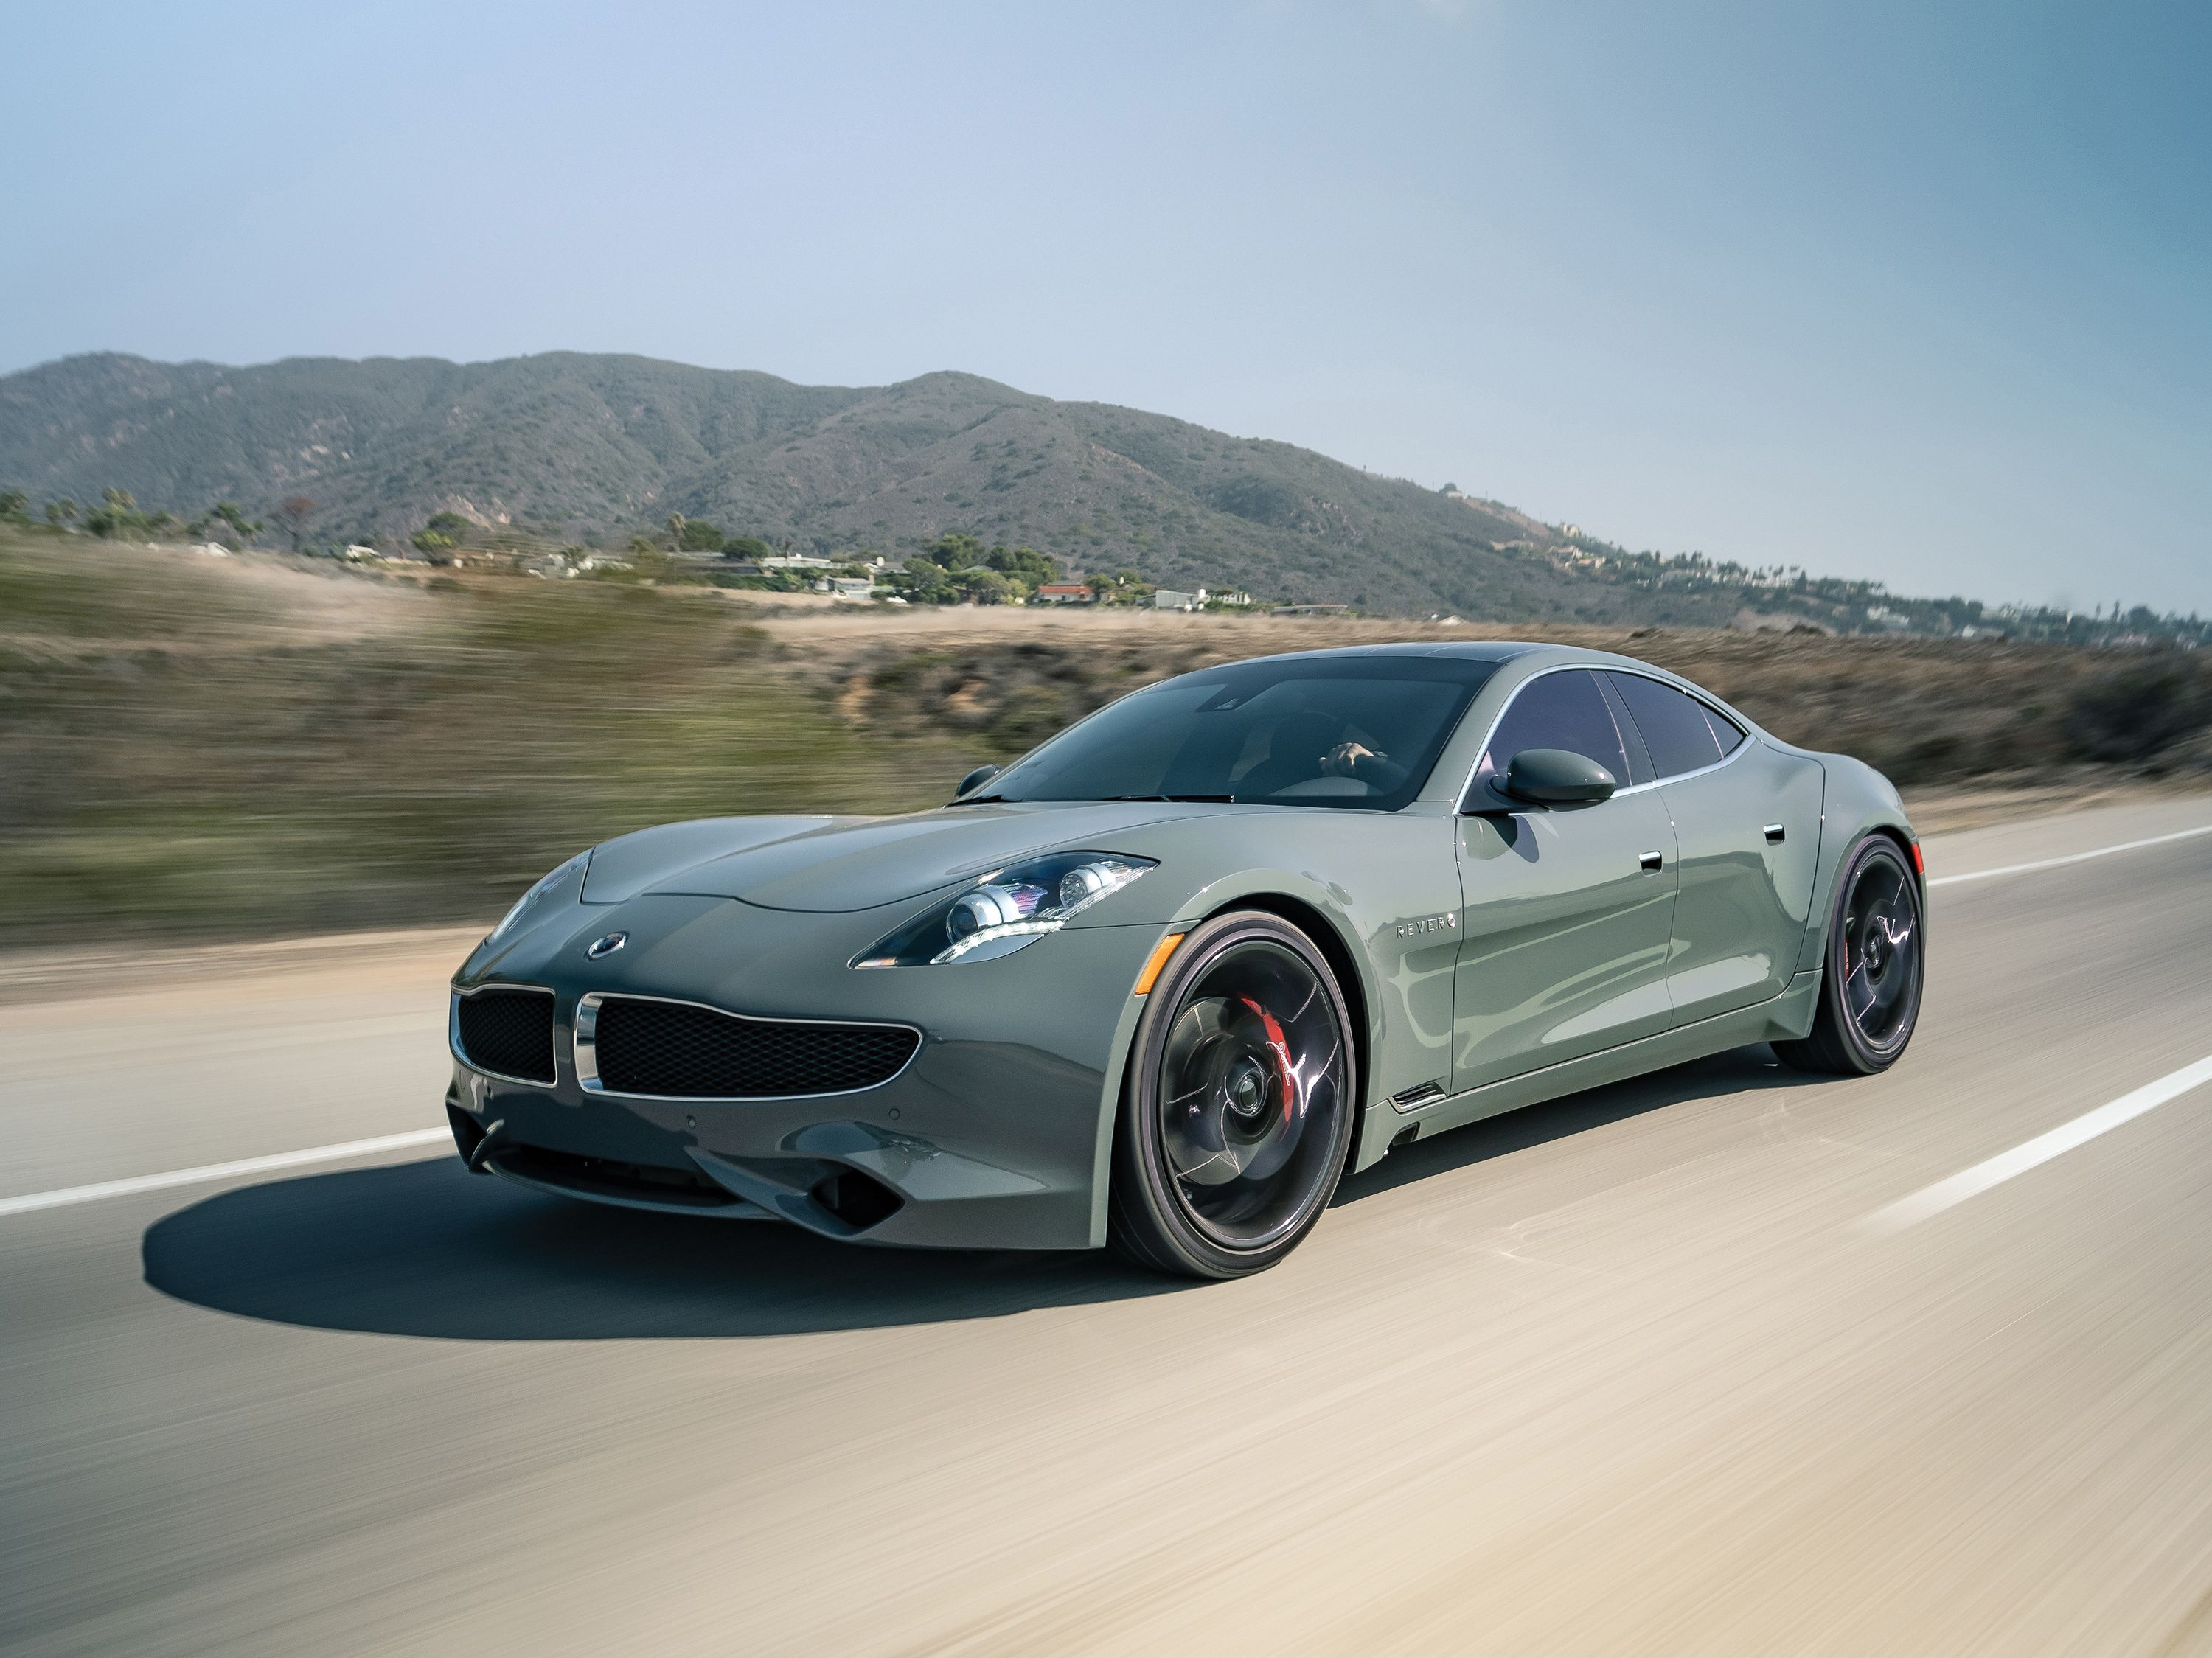 The Karma Revero Will Get the Three-Cylinder From the BMW i8